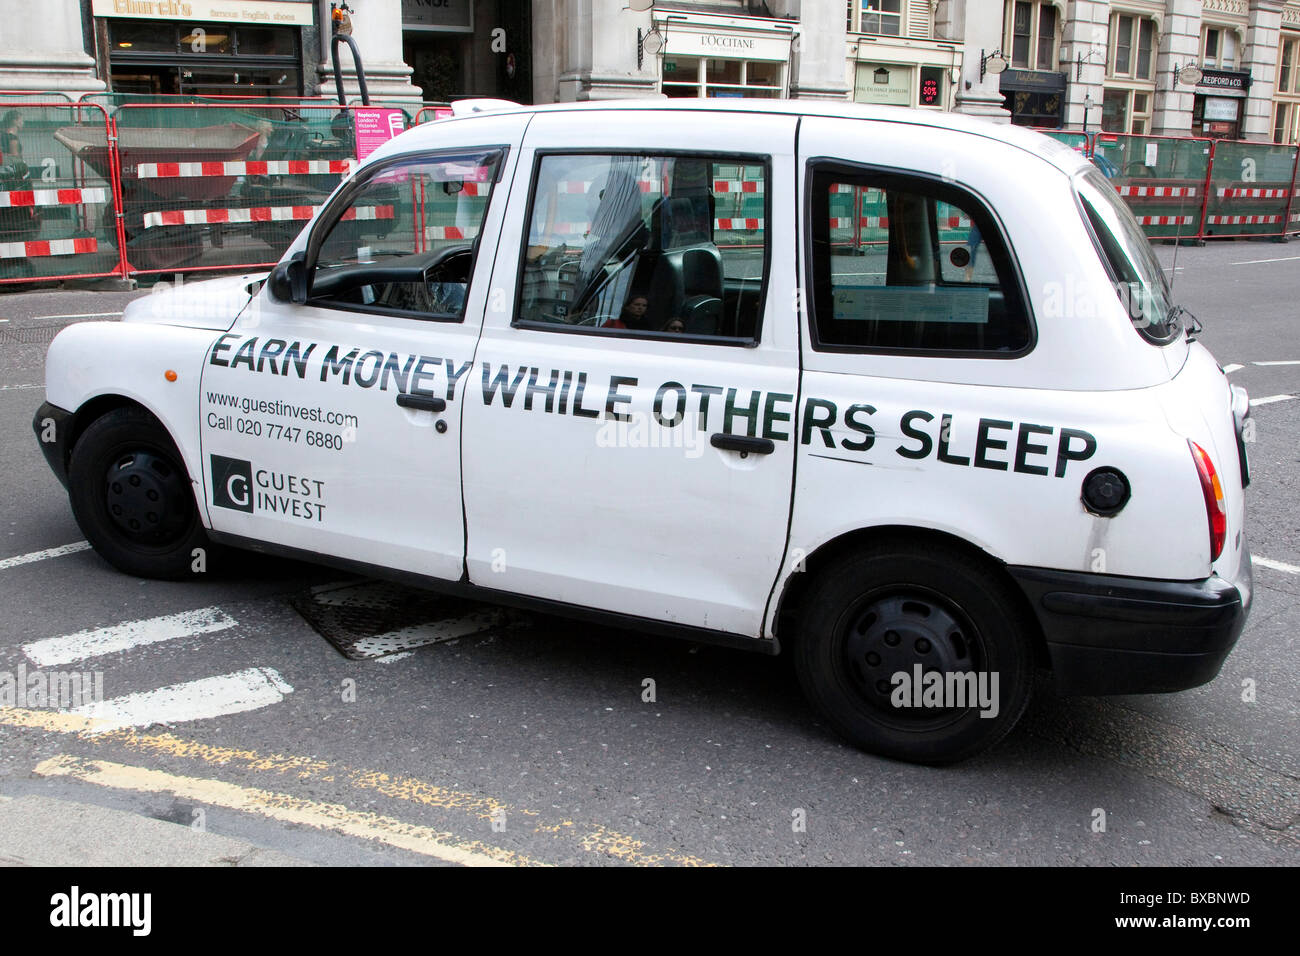 Taxi with advertising, earn money while others sleep, in London, England, United Kingdom, Europe - Stock Image